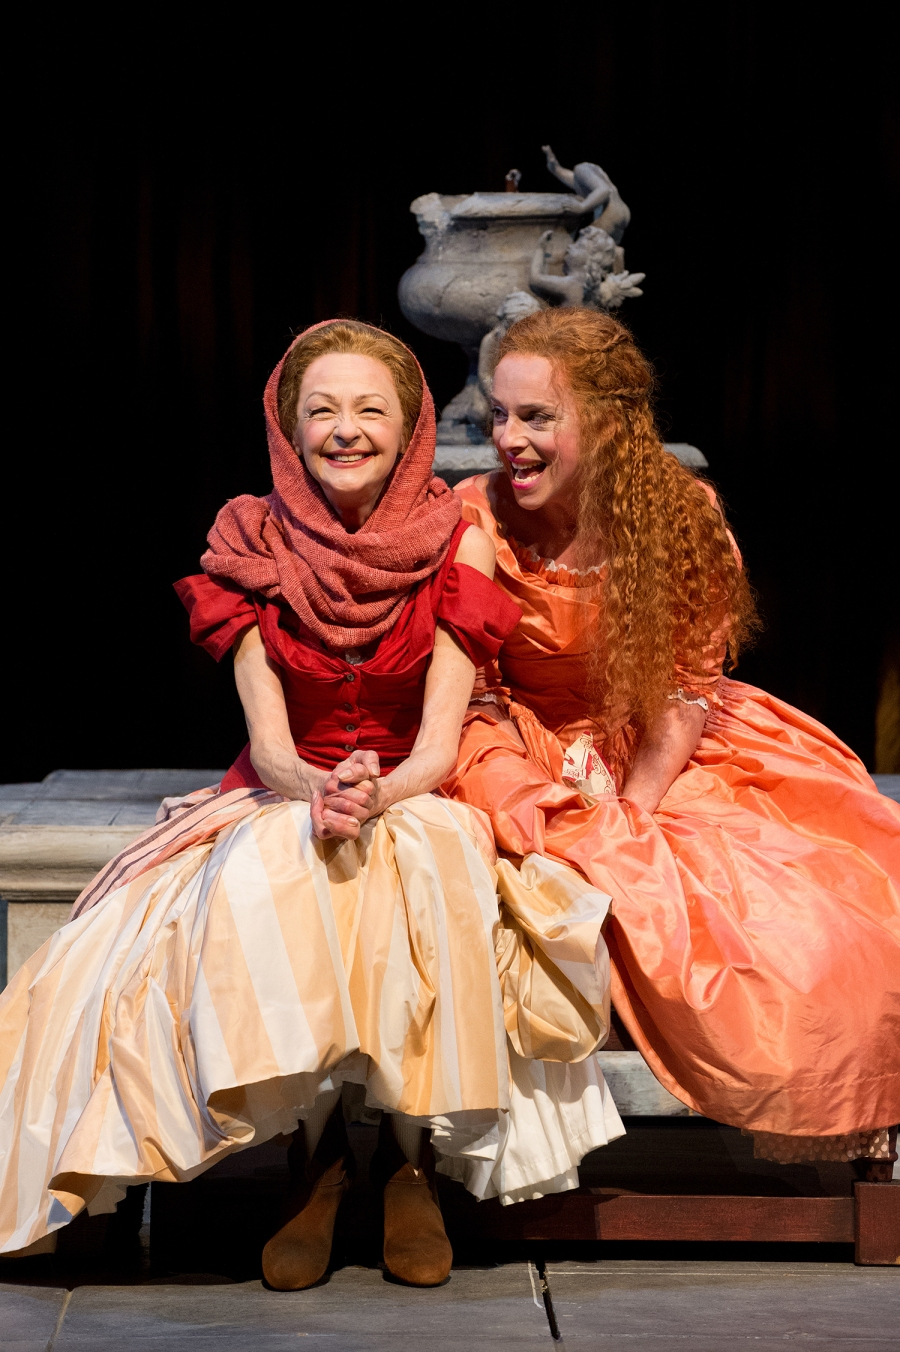 Julia (Erica Sullivan, right) and her waiting woman, Lucetta (Judith-Marie Bergan), share tales and confidences. Photo by Jenny Graham.